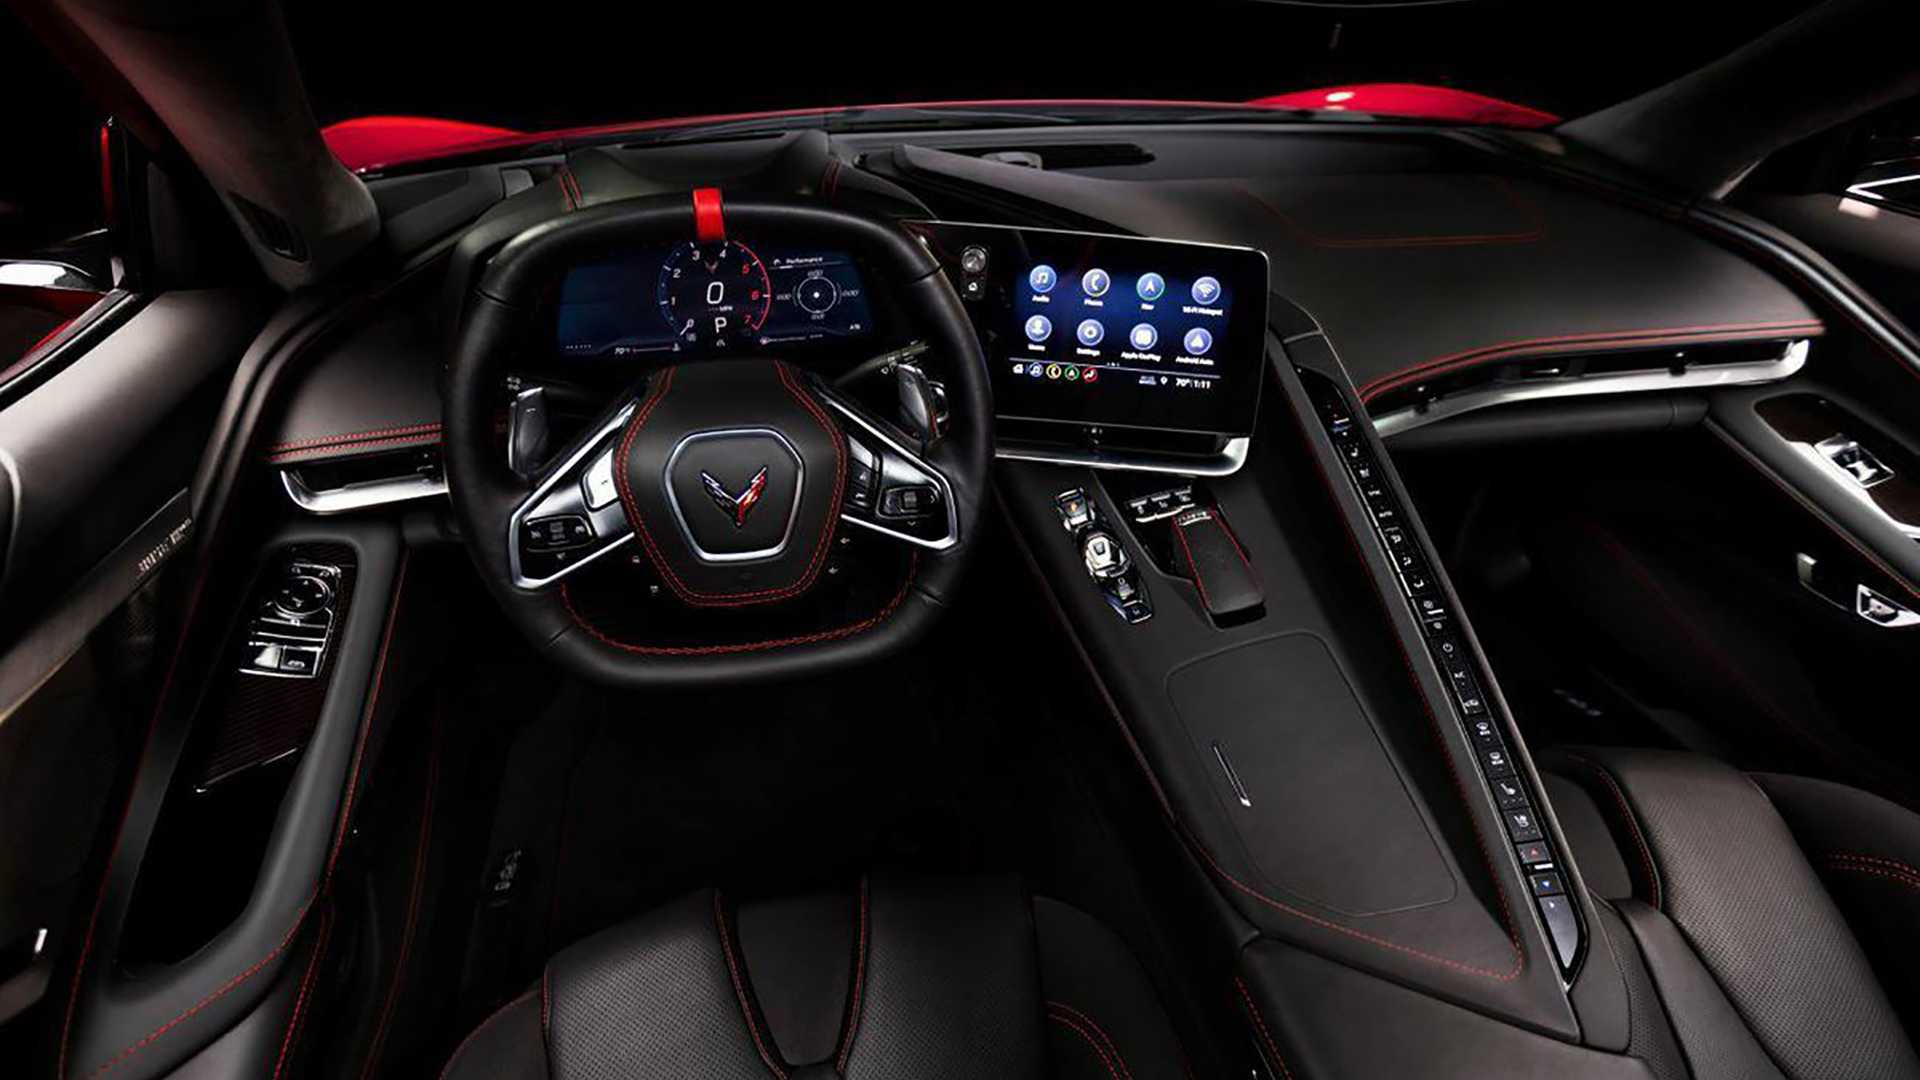 2020 Chevrolet Corvette C8 Interior